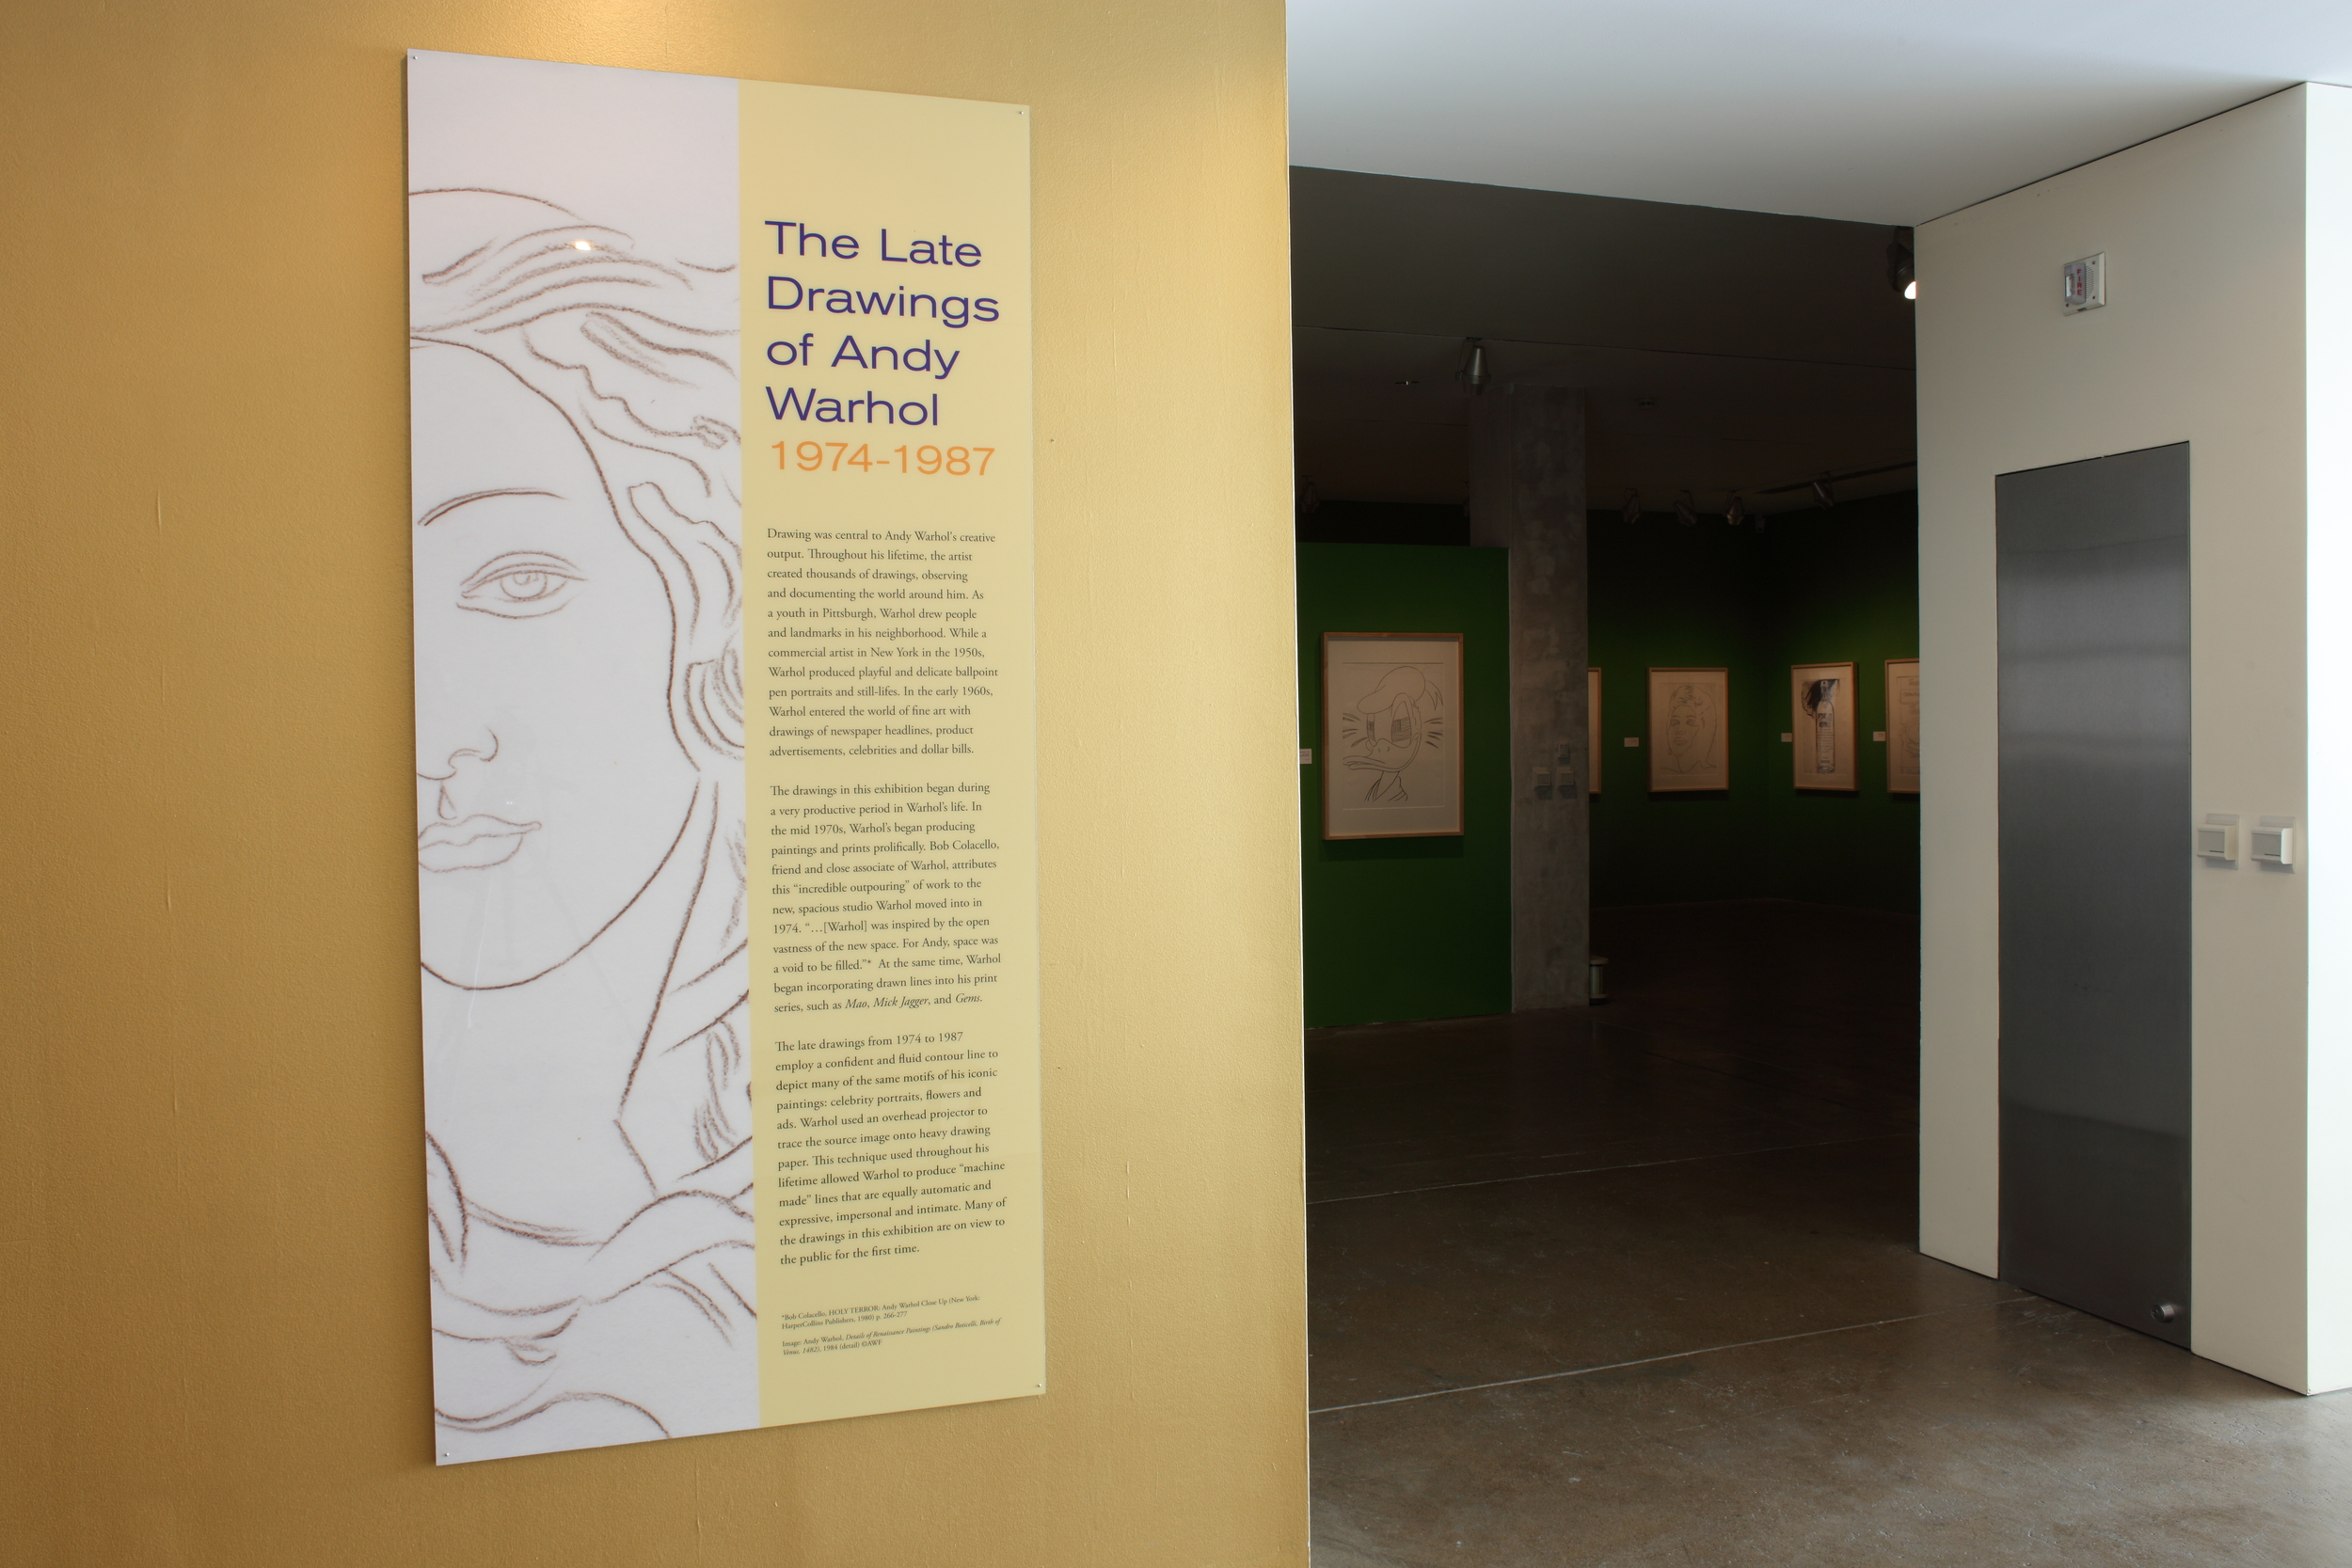 The Late Drawings of Andy Warhol exhibition, 2010 001.JPG